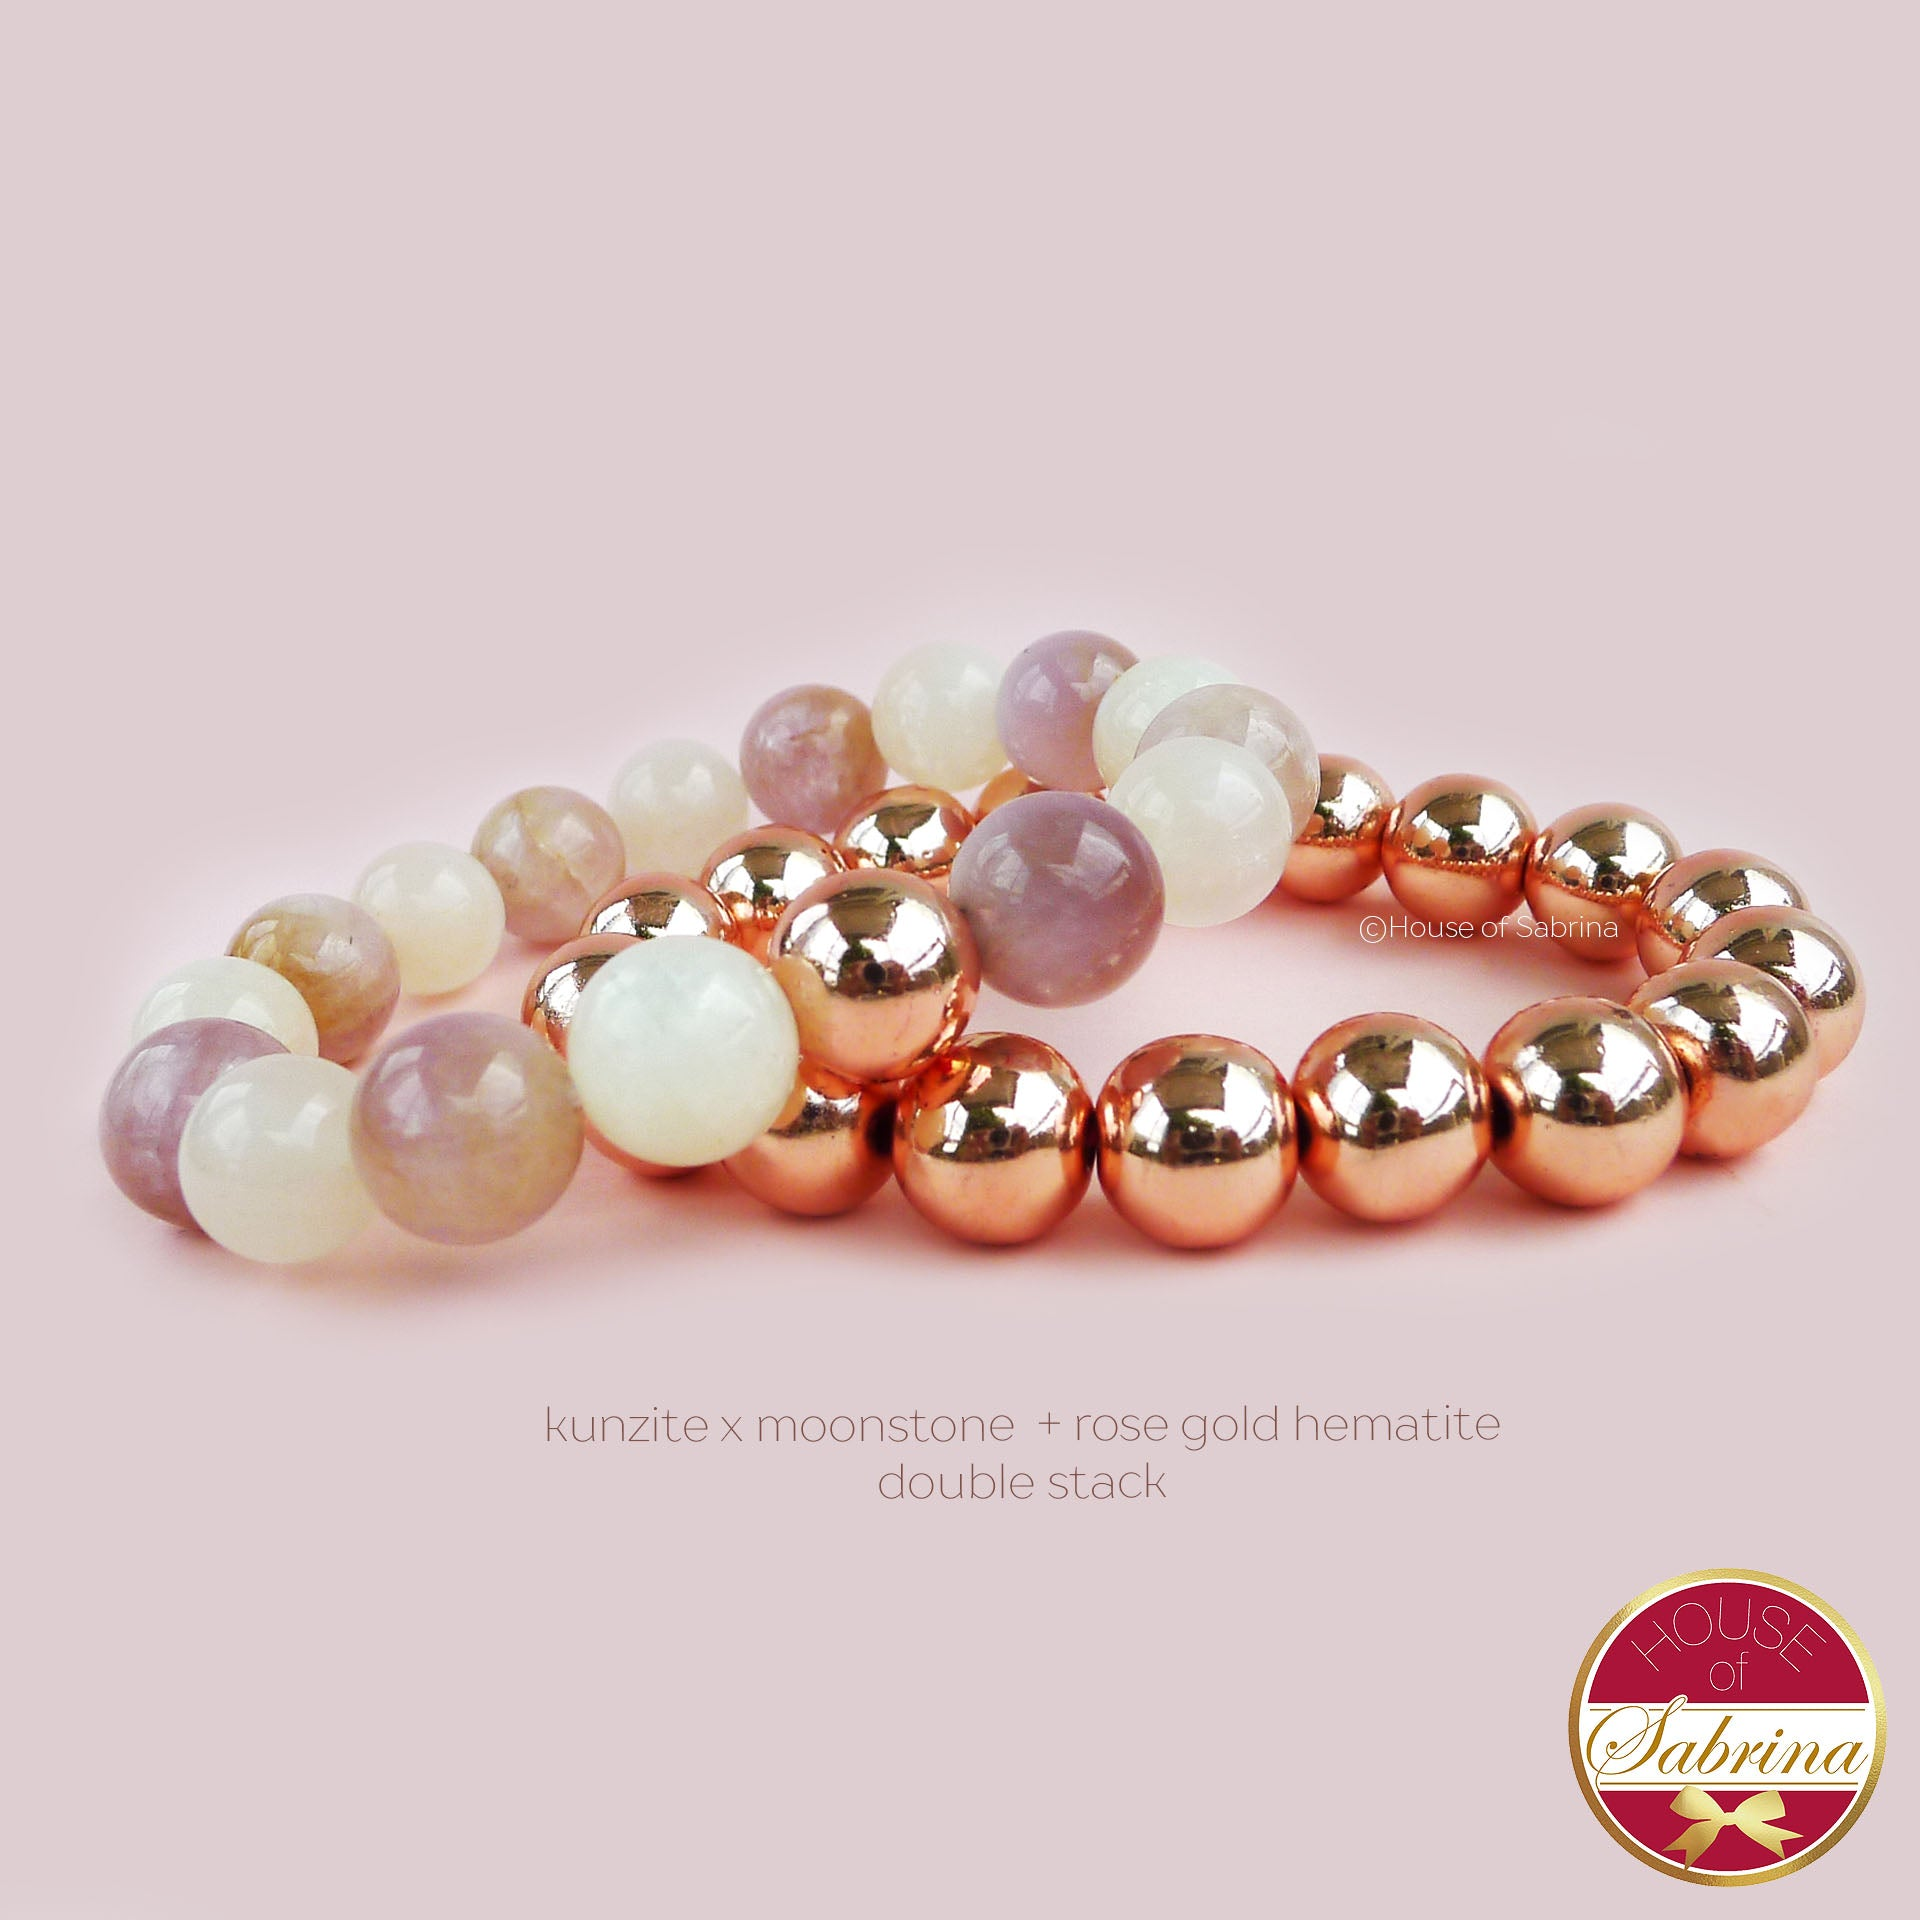 KUNZITE X MOONSTONE + ROSE GOLD HEMATITE DOUBLE STACK BRACELET